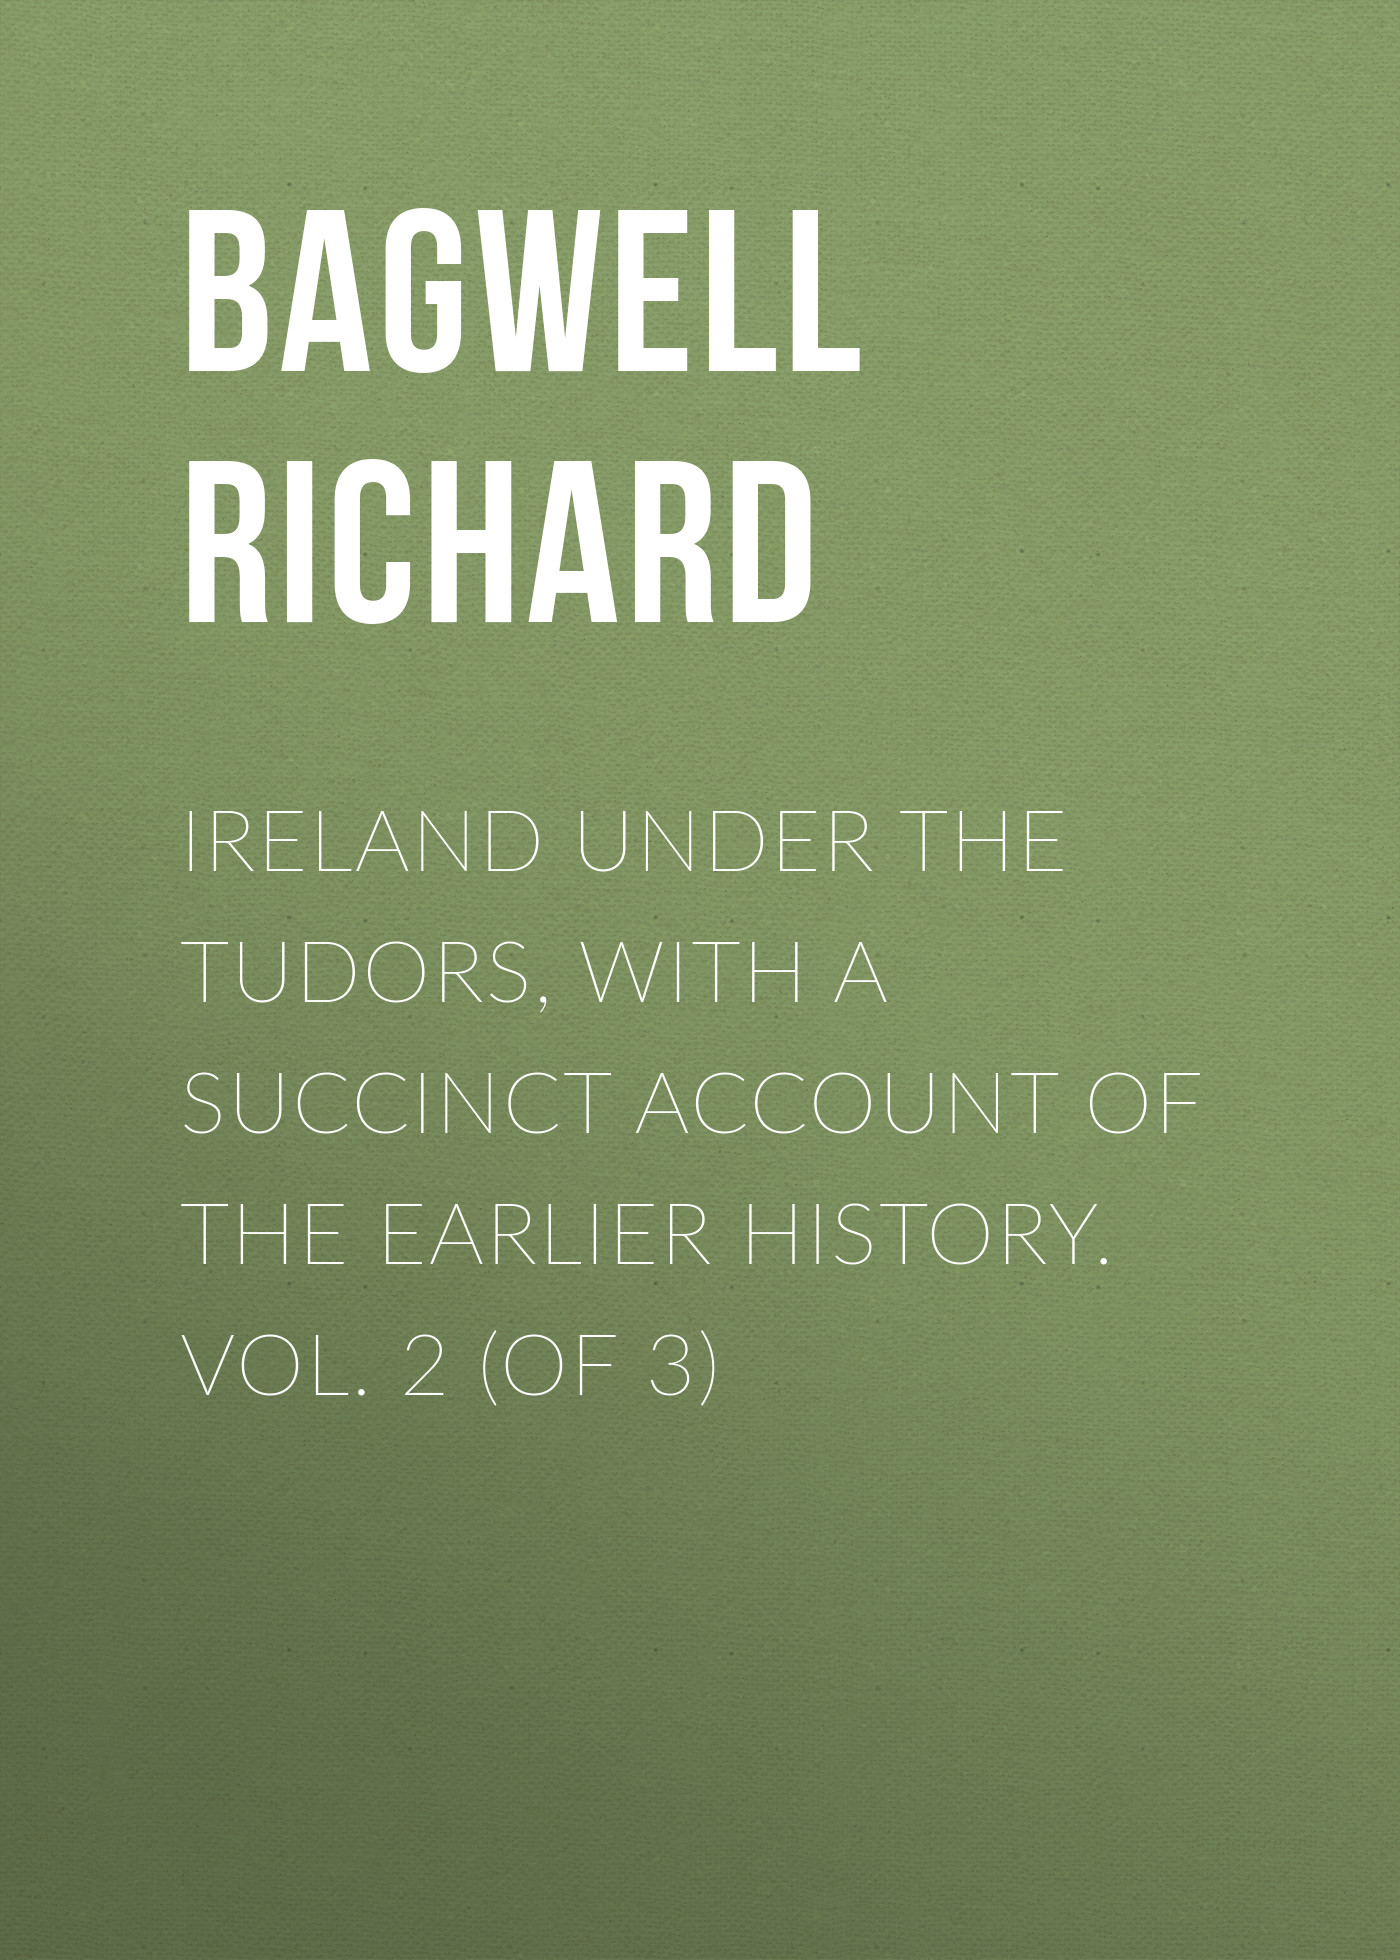 Bagwell Richard Ireland under the Tudors, with a Succinct Account of the Earlier History. Vol. 2 (of 3) richard sylla a history of interest rates